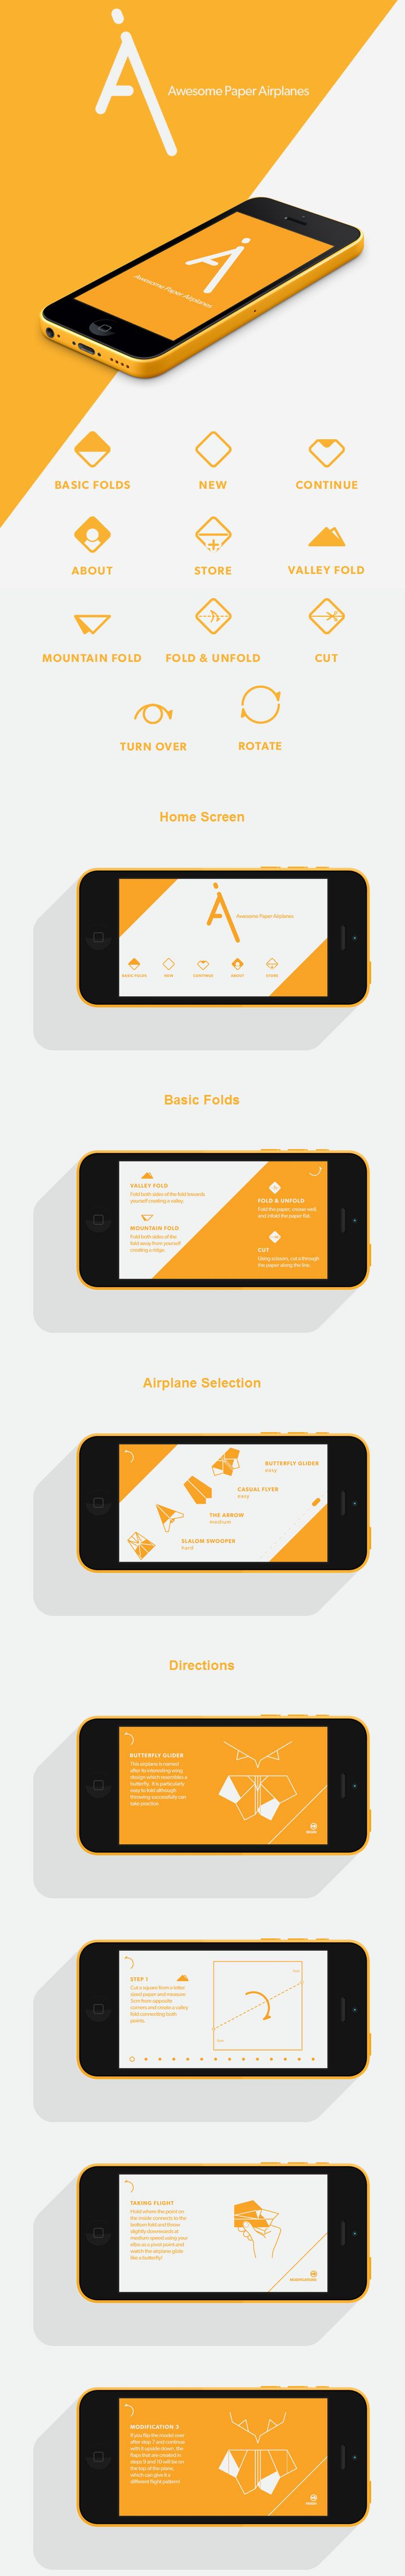 Awesome Paper Airplanes App